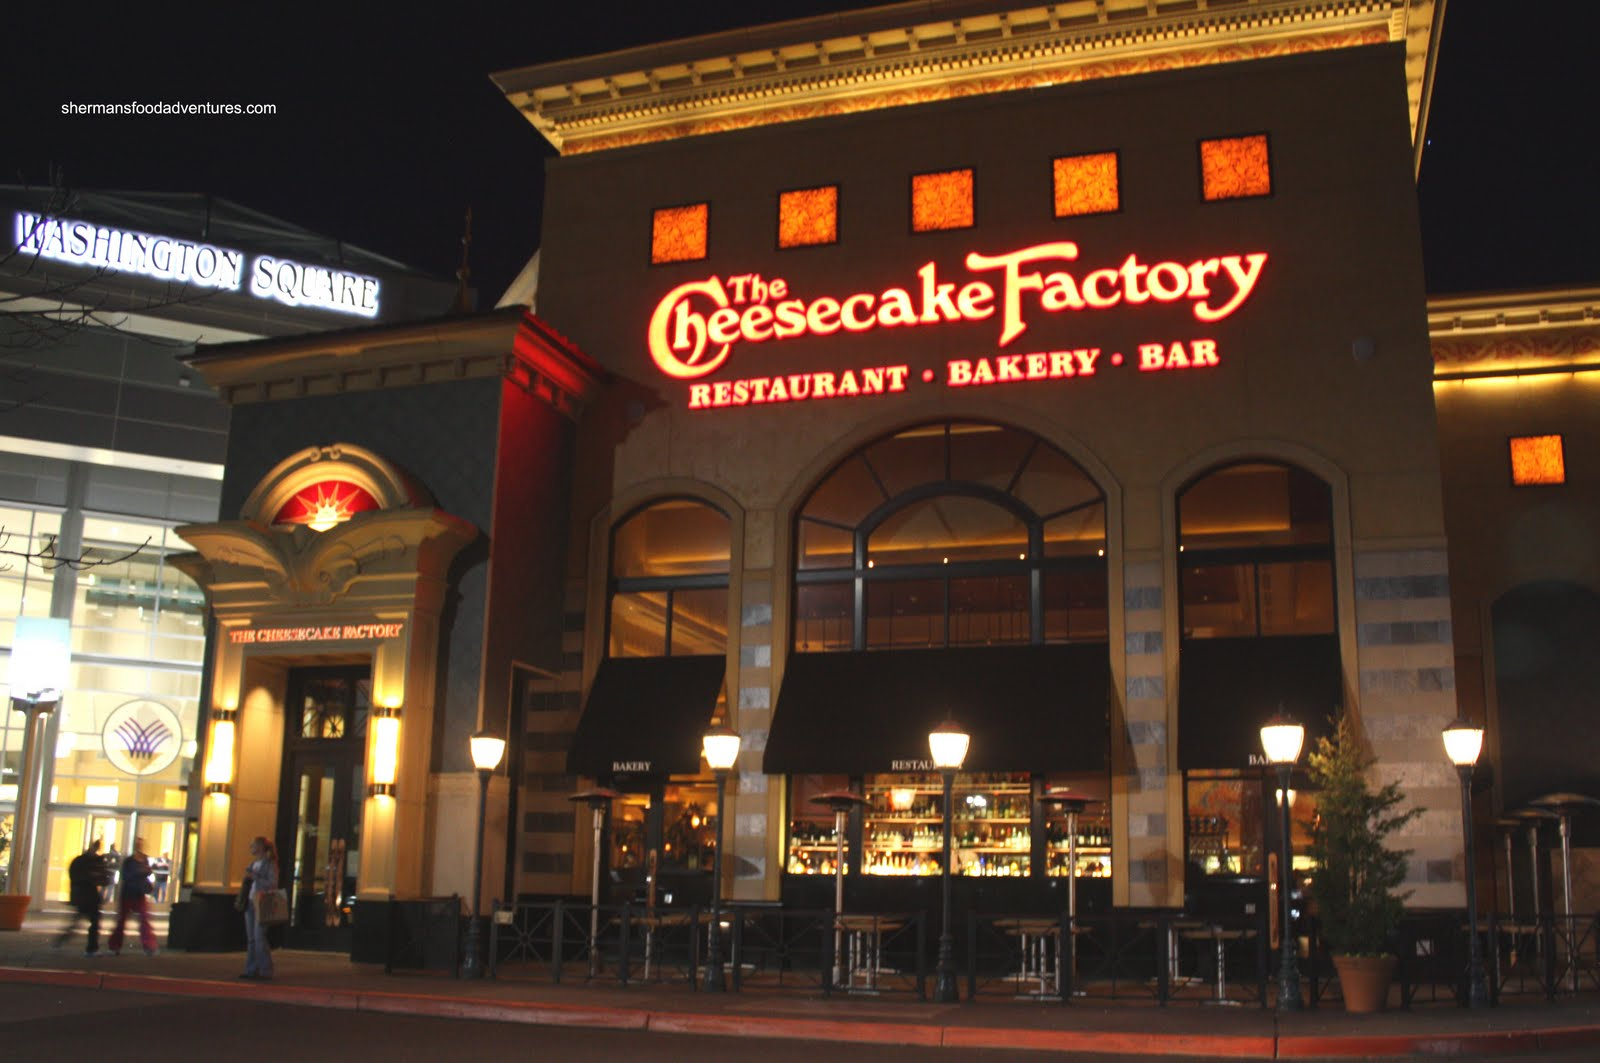 Cheesecake Factory Apologizes After Police Are Removed For Having Guns